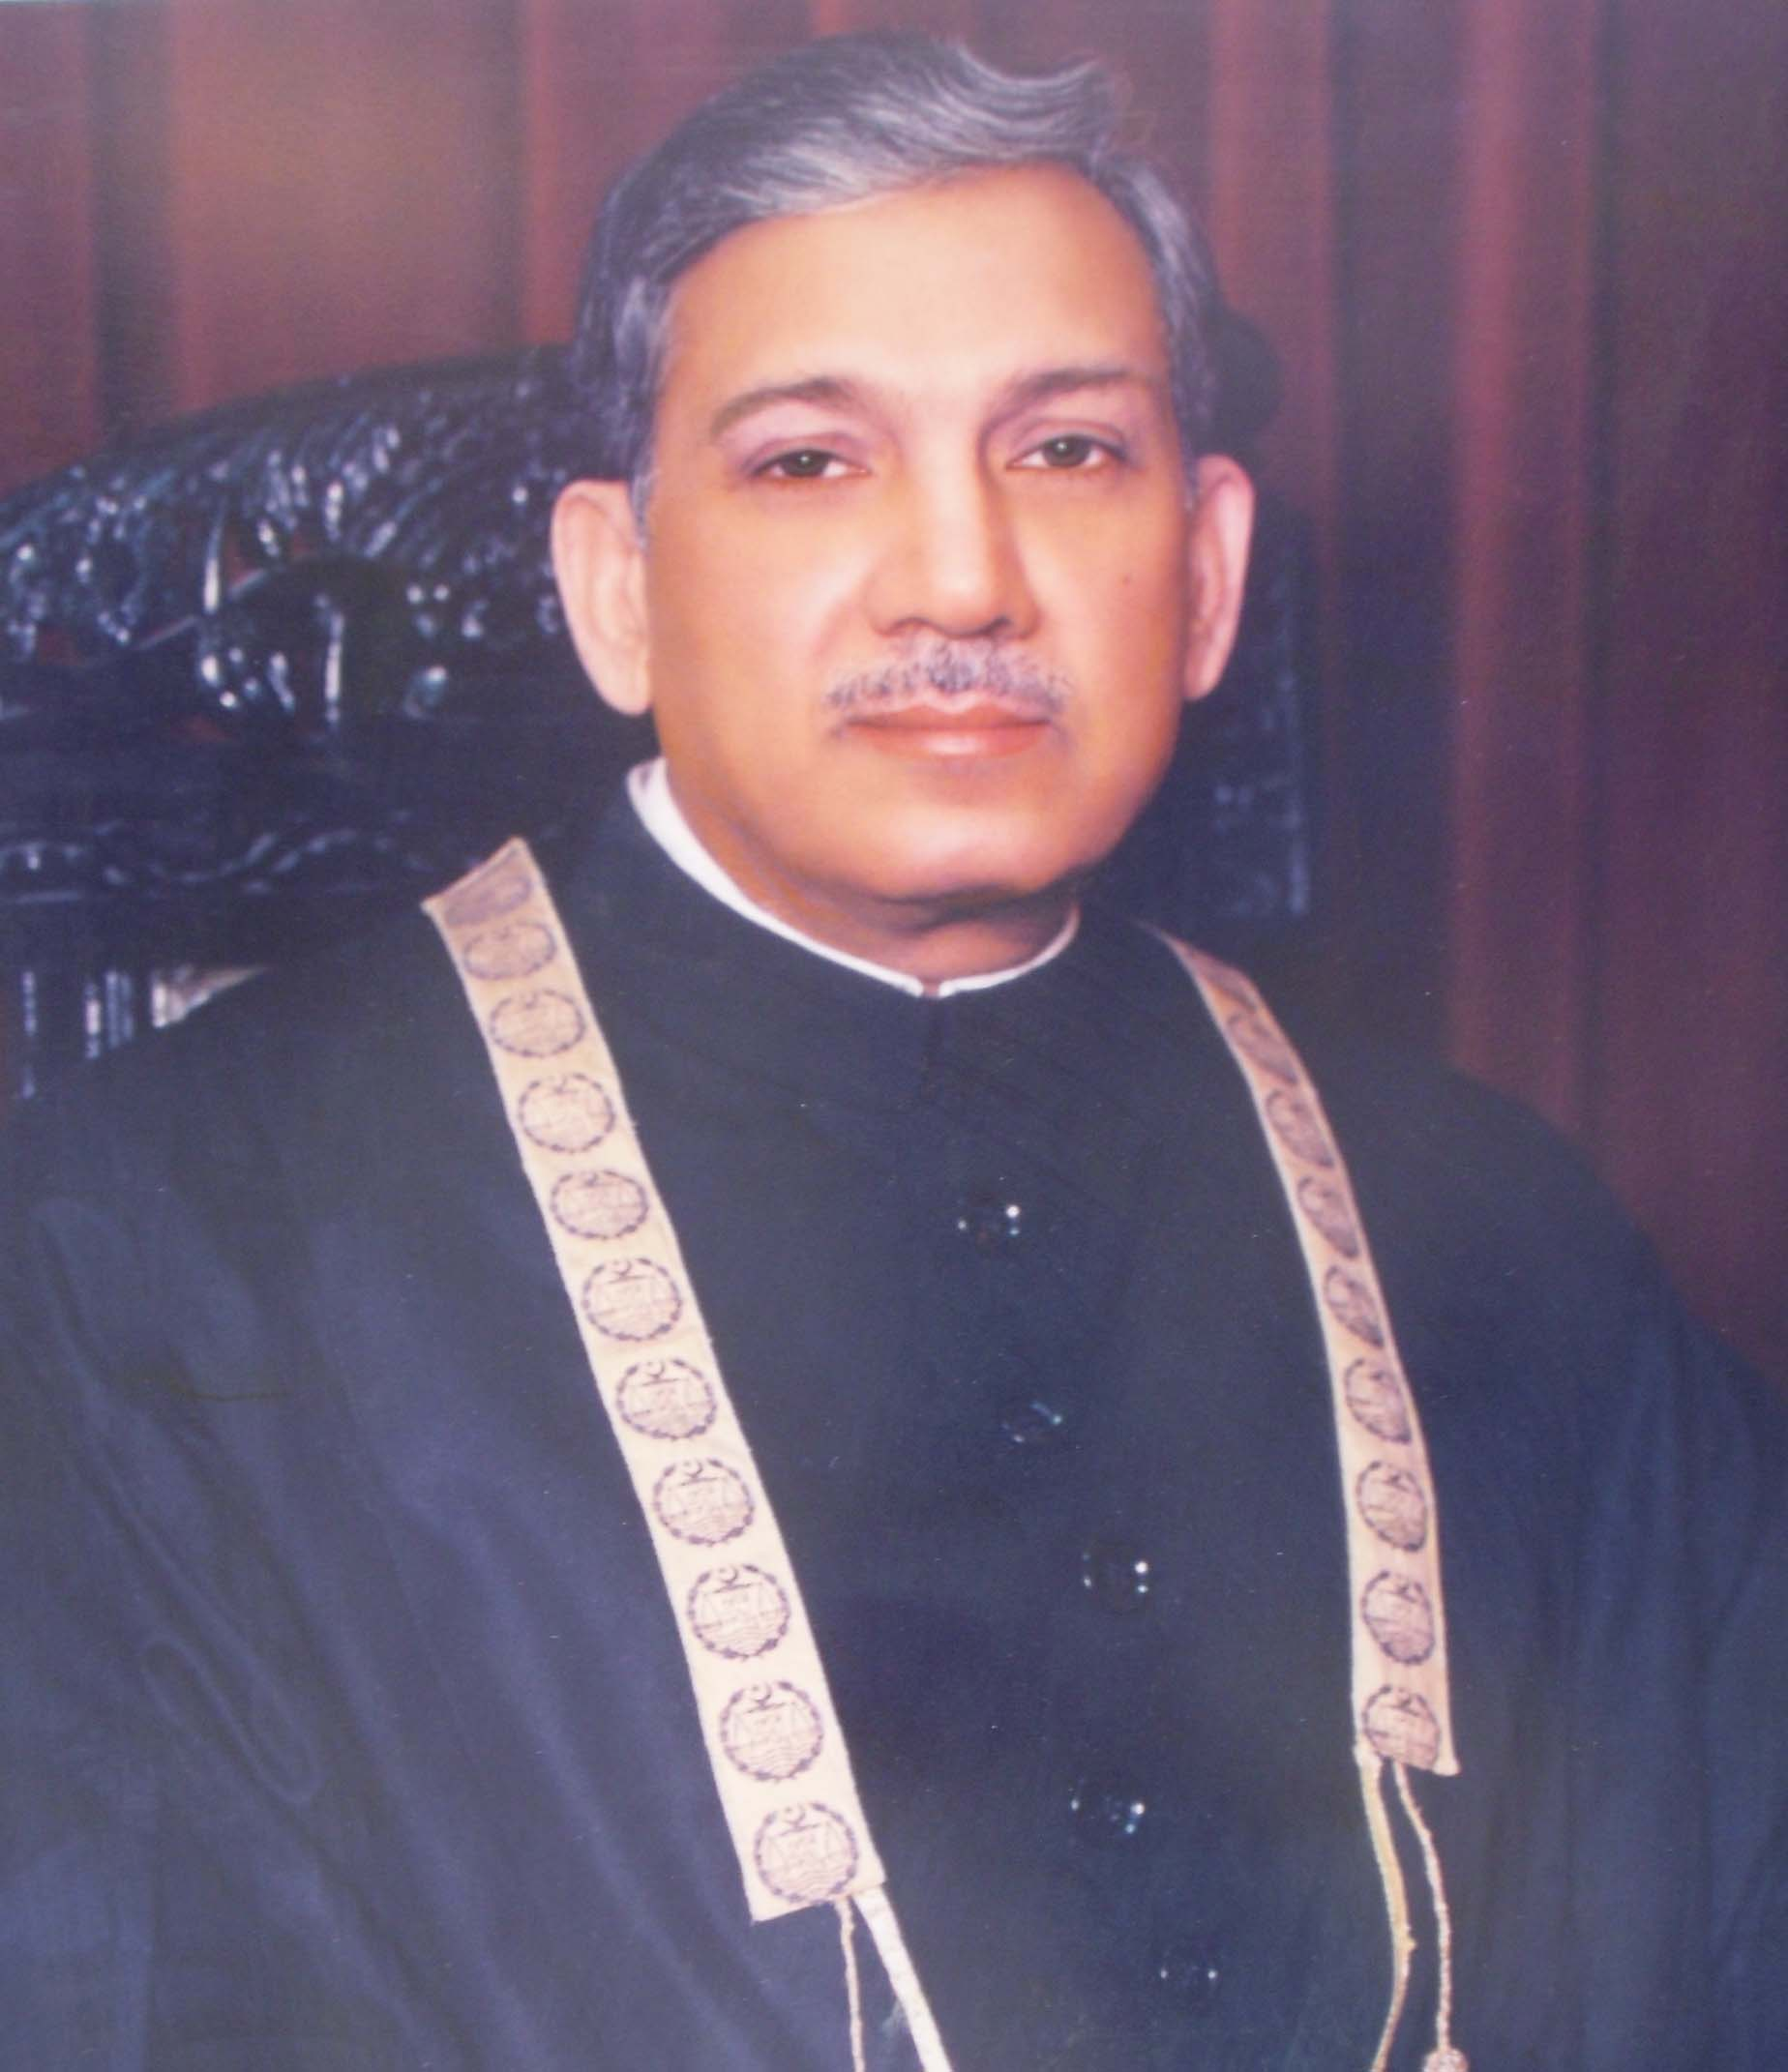 Mr Justice M Mahboob Ahmad Was Born In Baghdad Iraq On 30th Of July 1933 He Started His Legal Practice 1957 Soon After Obtaining Degree Law